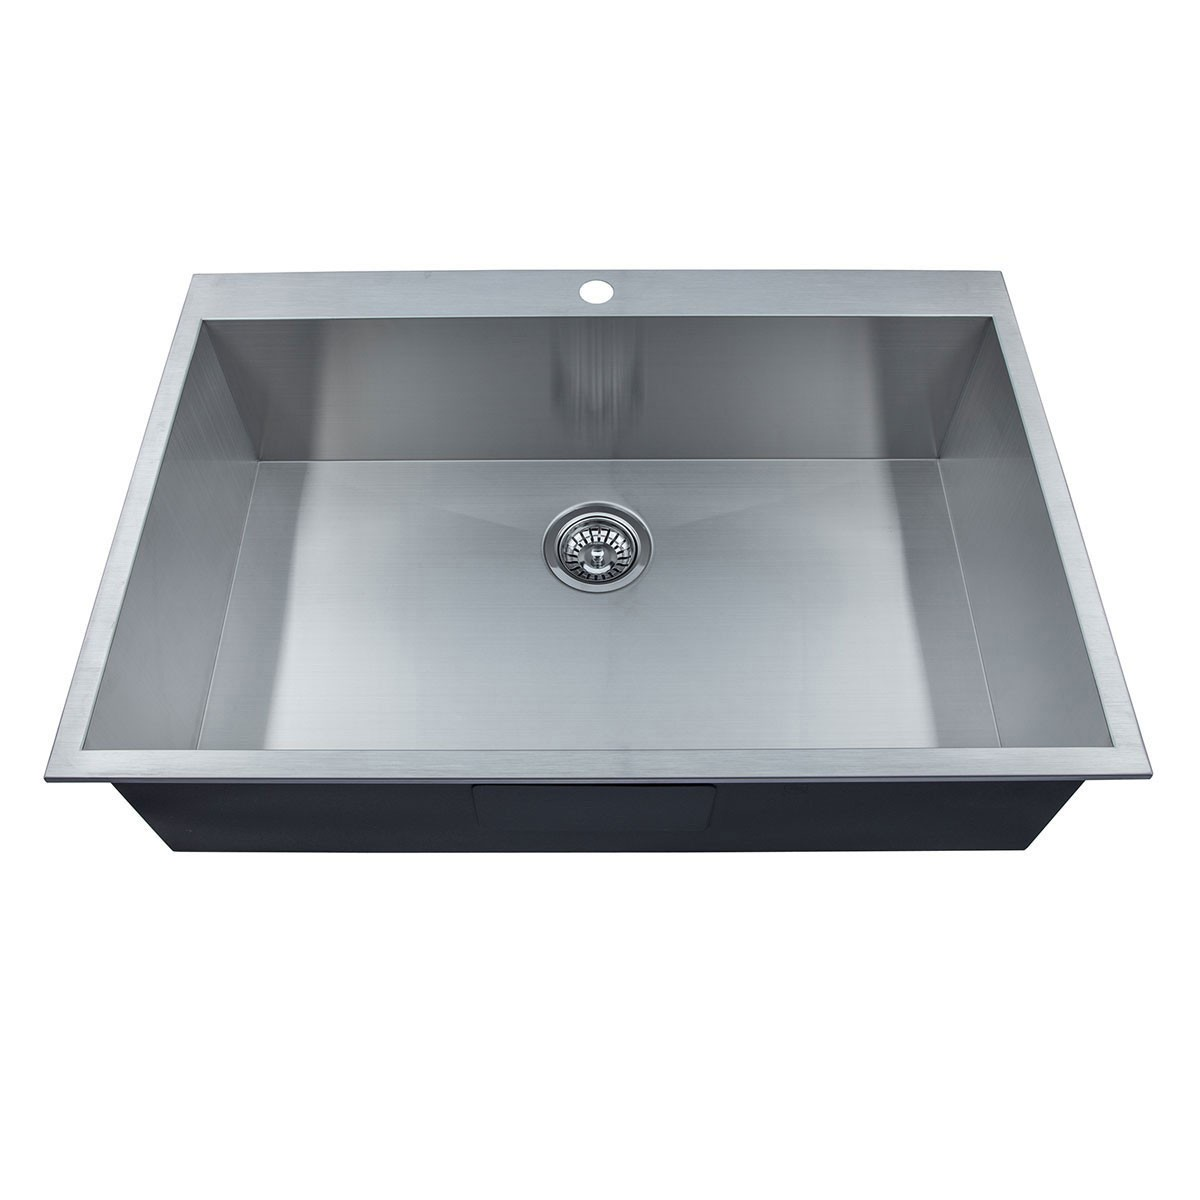 33 x 22 In. Stainless Steel Handmade Kitchen Sink (AS3322-R0)